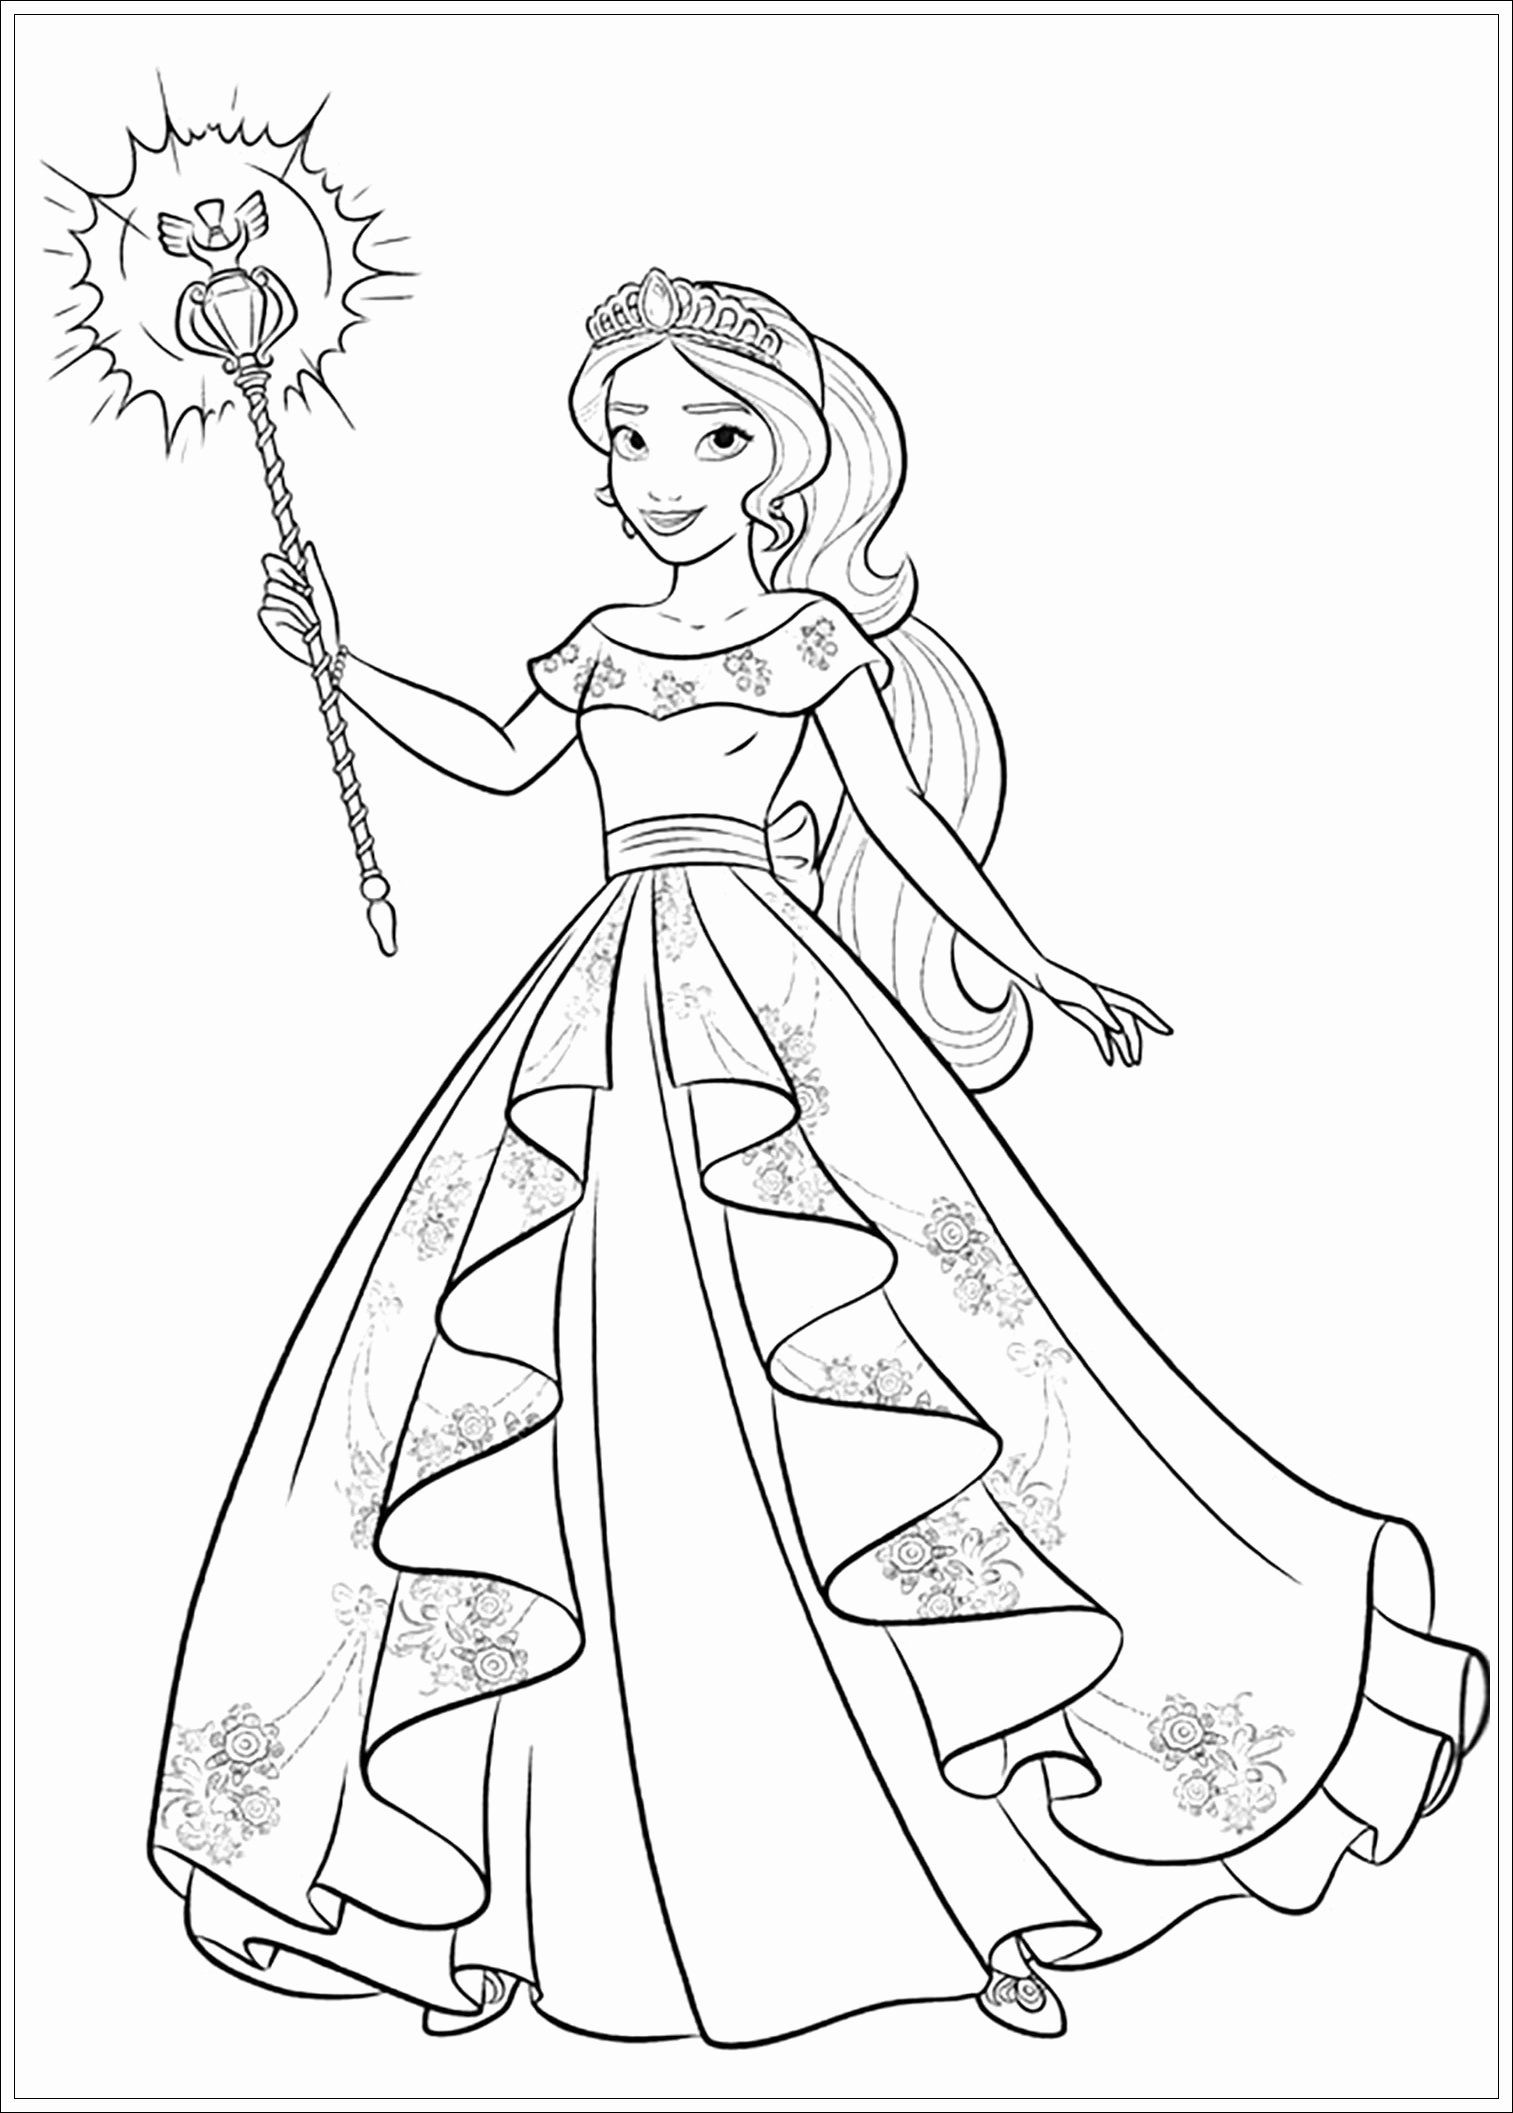 Elena Of Avalor Coloring Book Luxury Coloring Pages Elena Avalor Coloring Book Cool Princess Coloring Pages Disney Coloring Pages Cartoon Coloring Pages